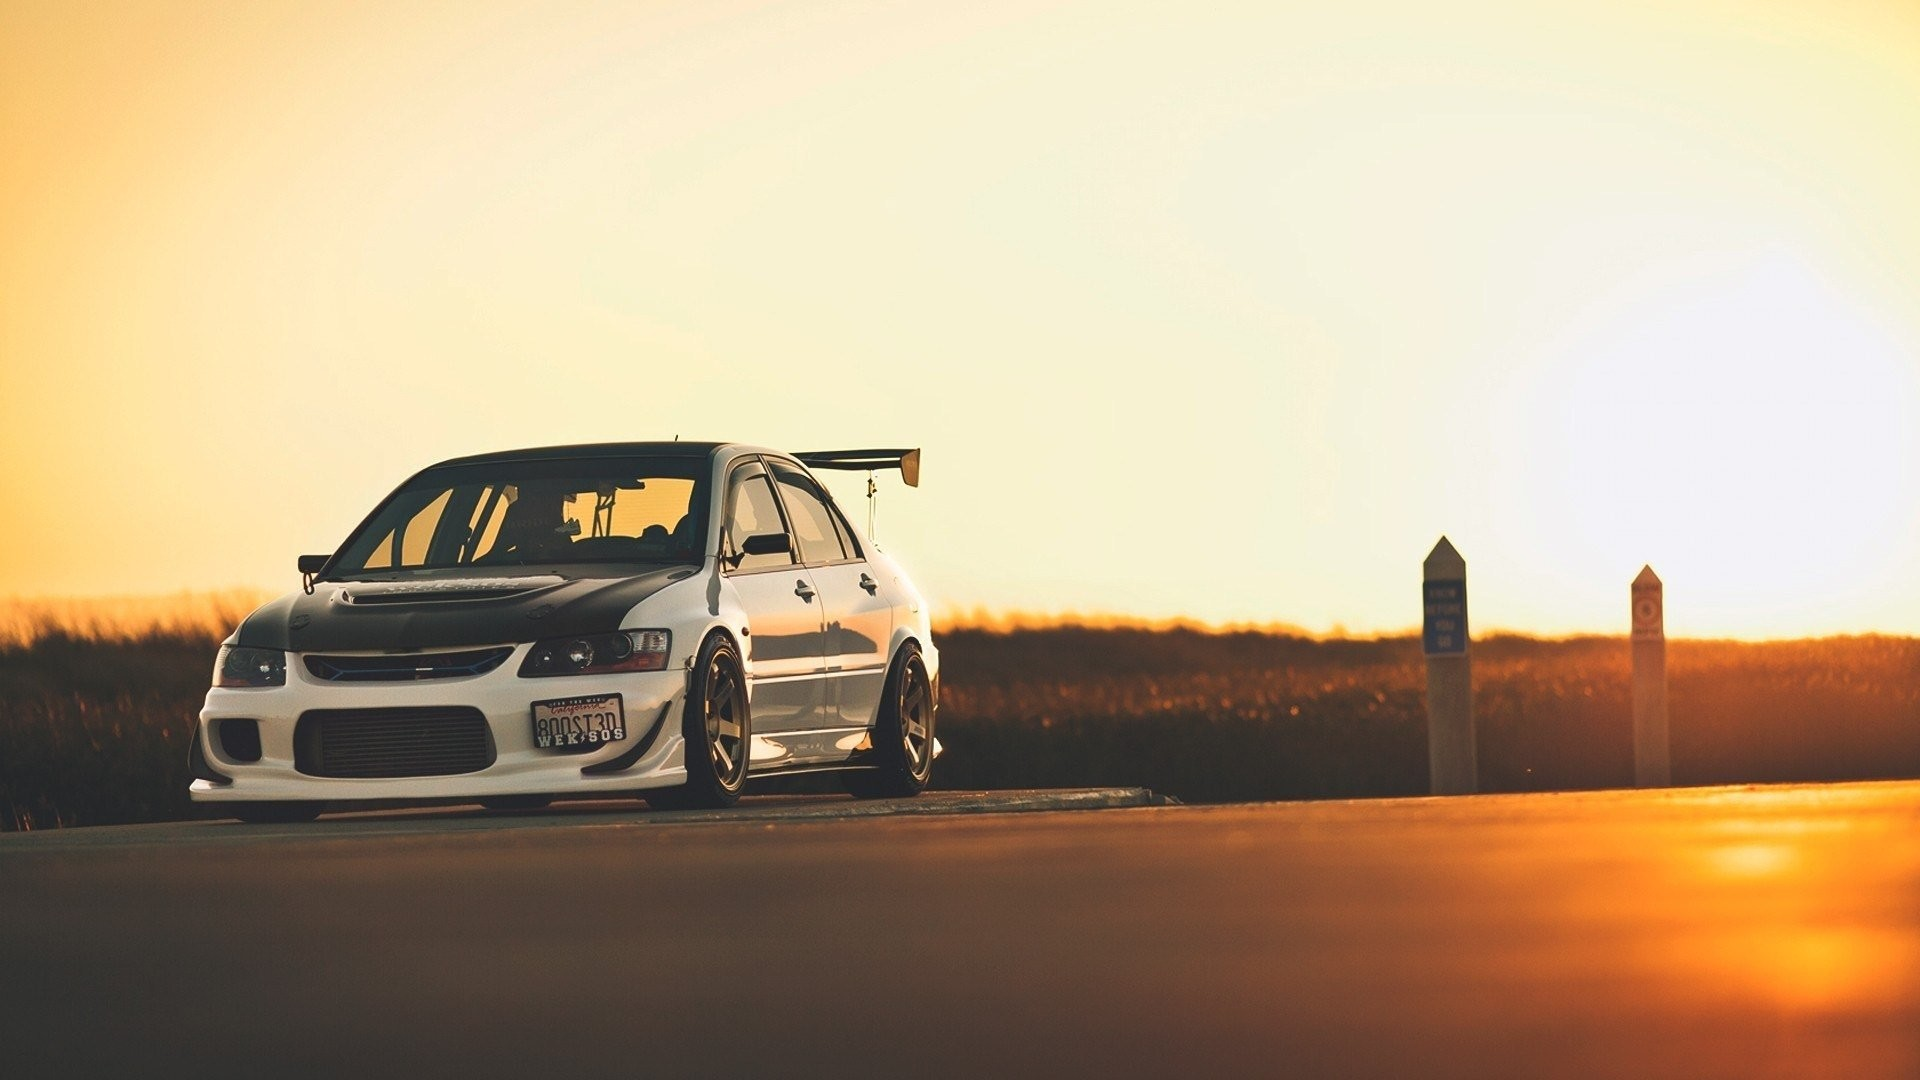 Hd Wallpapers 1080p Widescreen Cars Evo 9 Wallpaper Hd 72 Images